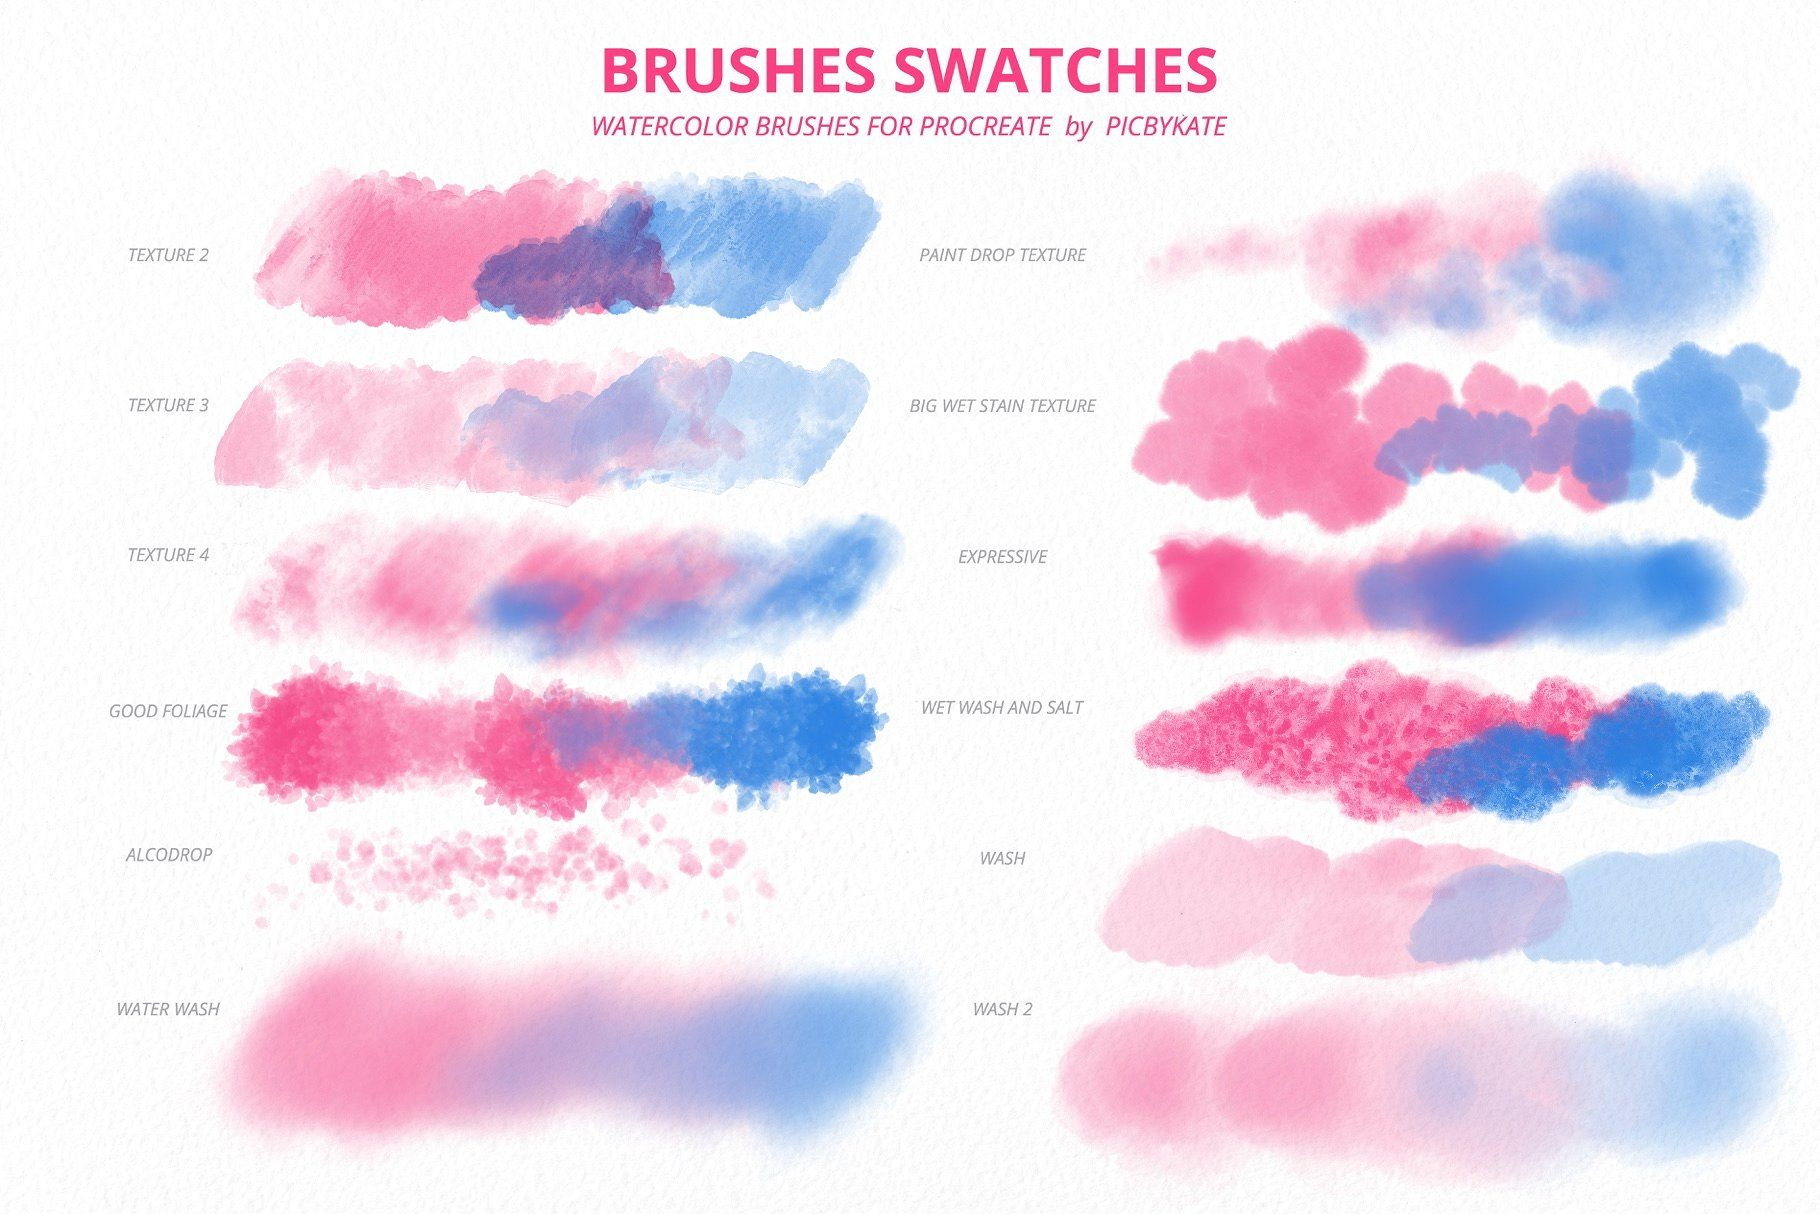 50 Procreate Watercolor Brushes Watercolor Brushes Procreate